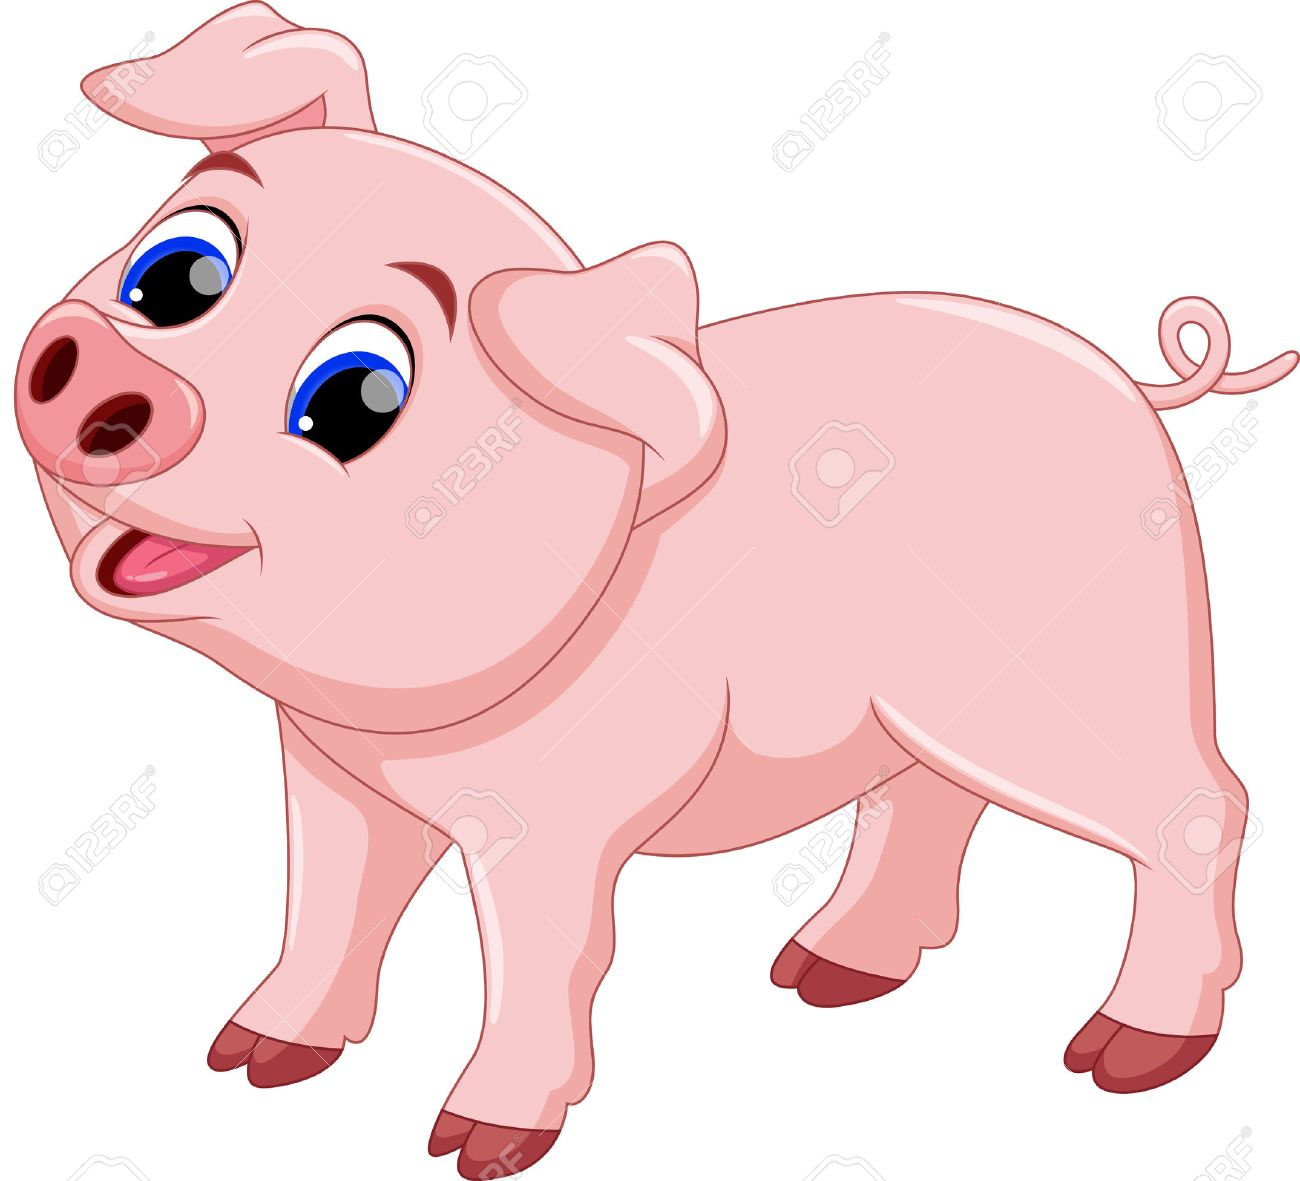 100 206 pig stock vector illustration and royalty free pig clipart rh 123rf com pig clipart png pig clipart black and white